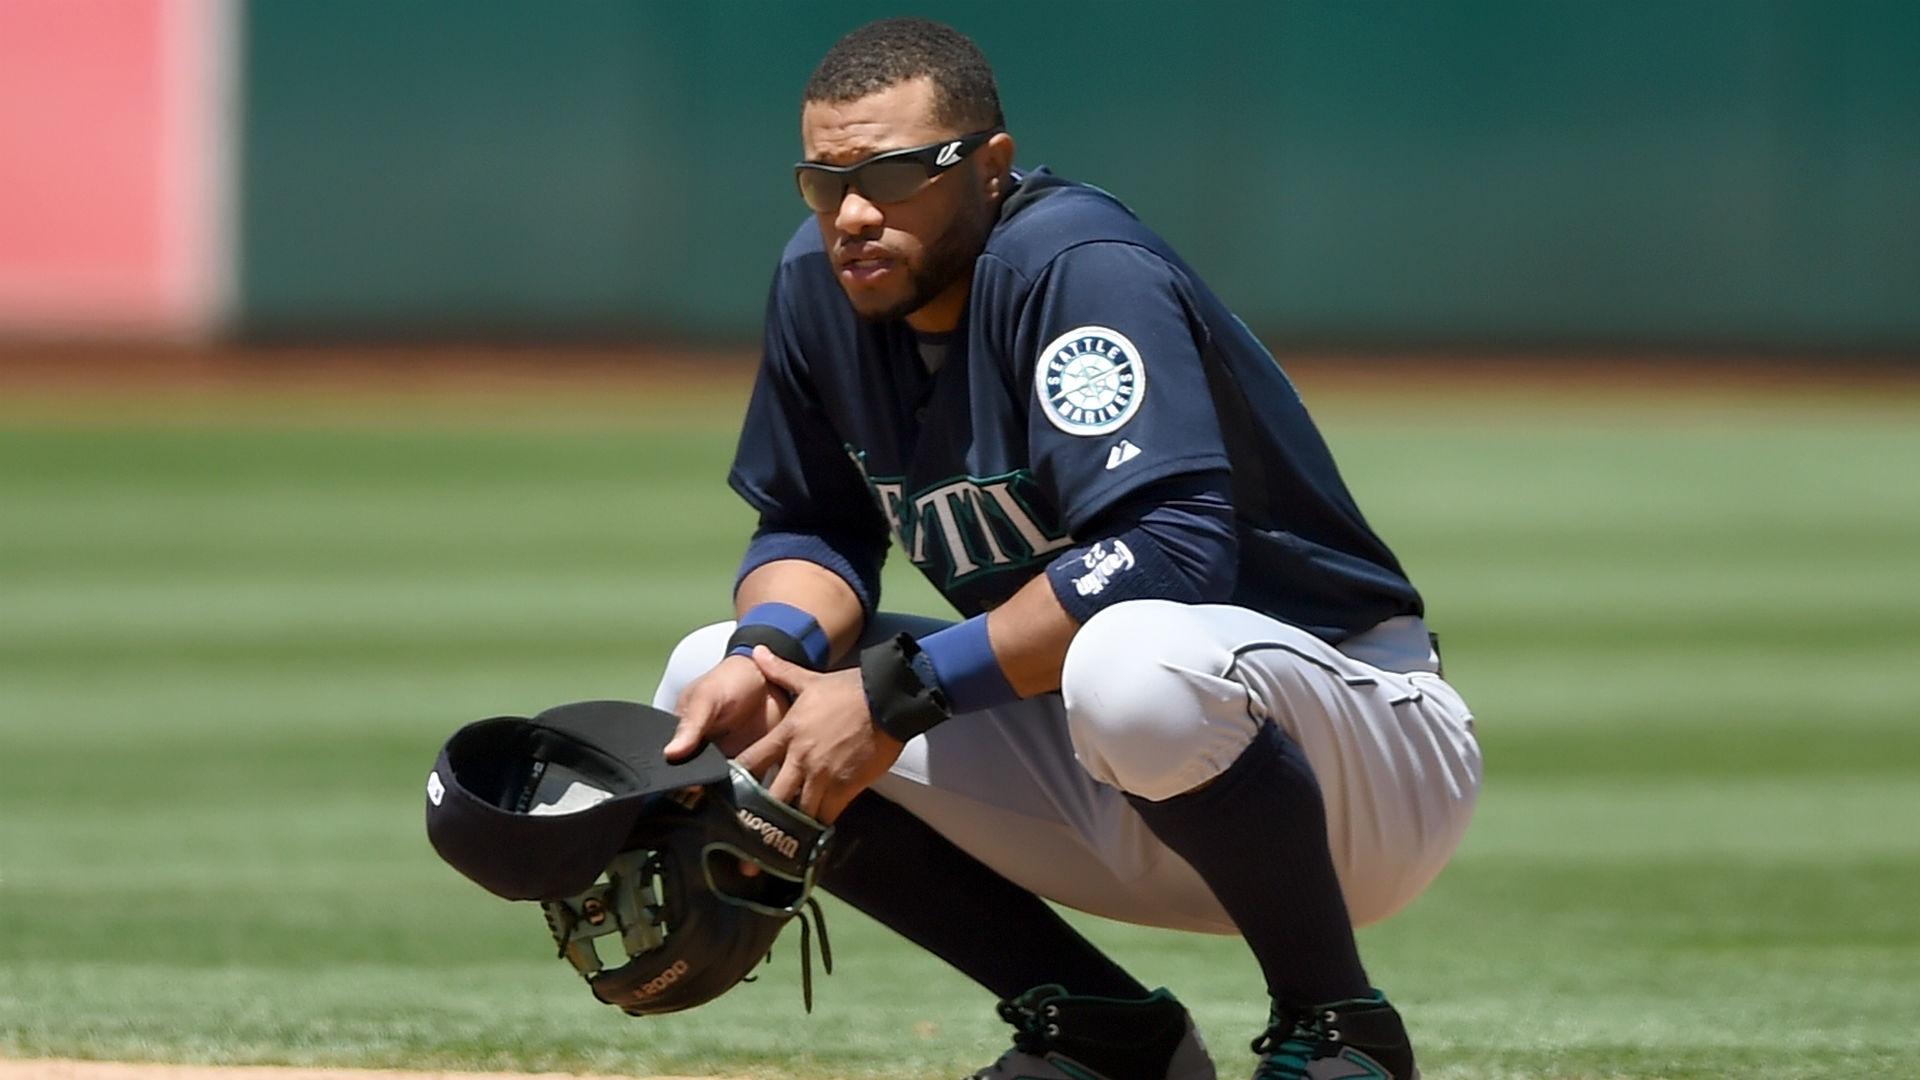 Robinson Cano struggles with digestive ailment amid miserable season